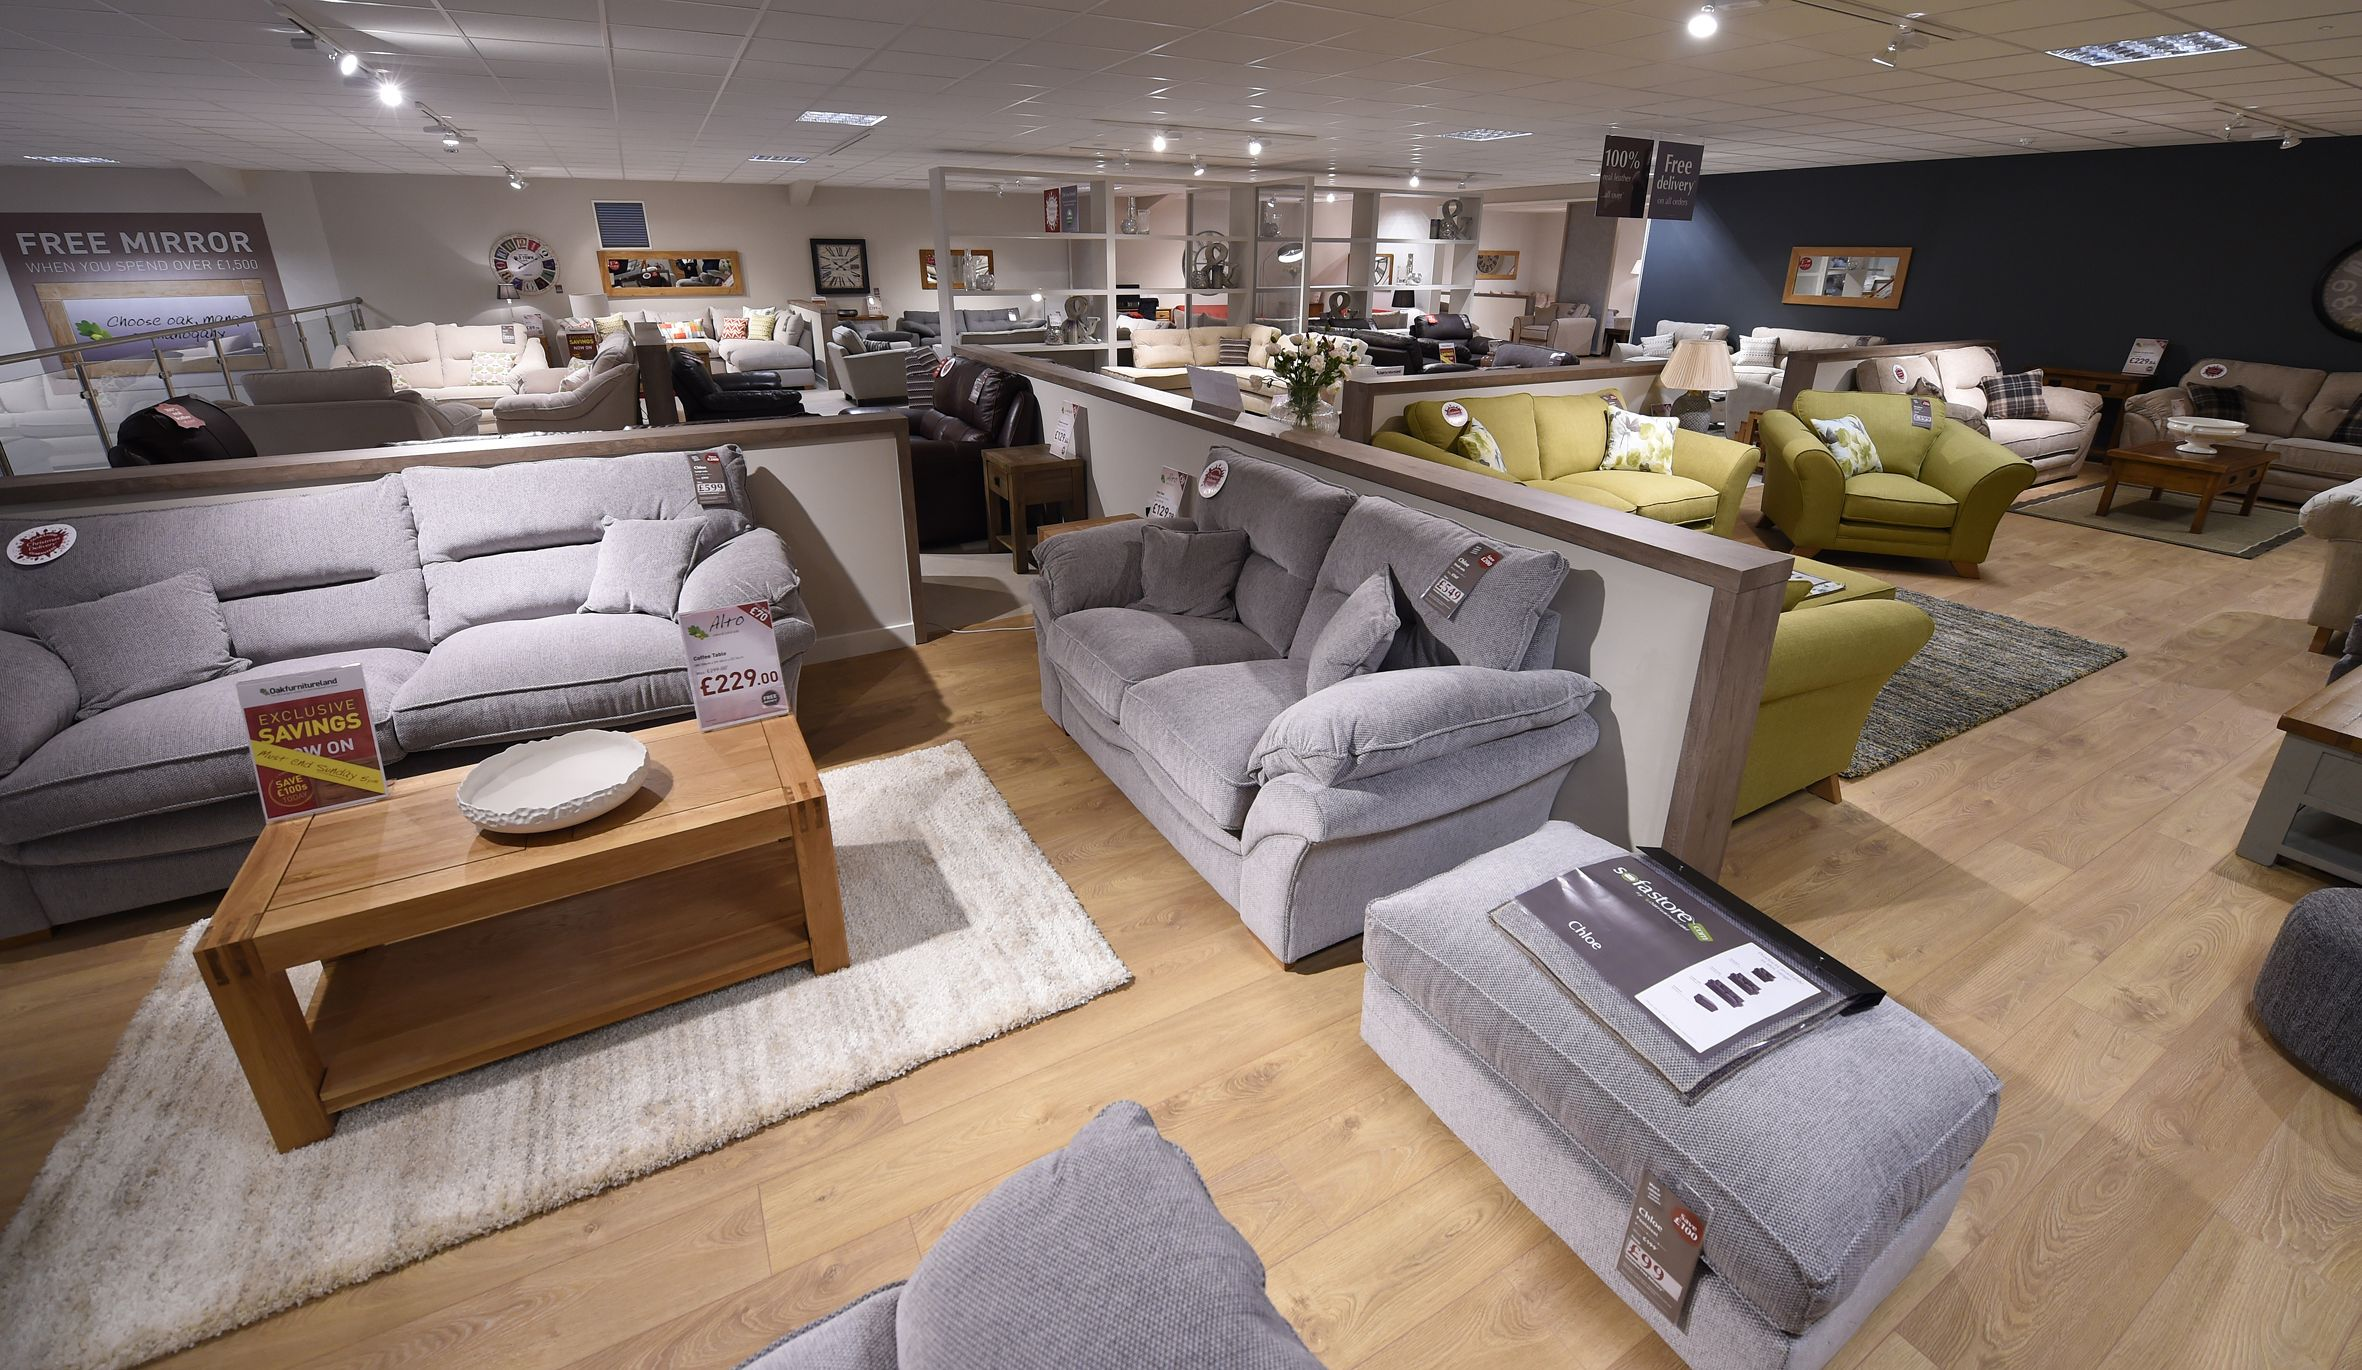 A Peak in our New Sofastore section featuring the Chloe Sofa Range